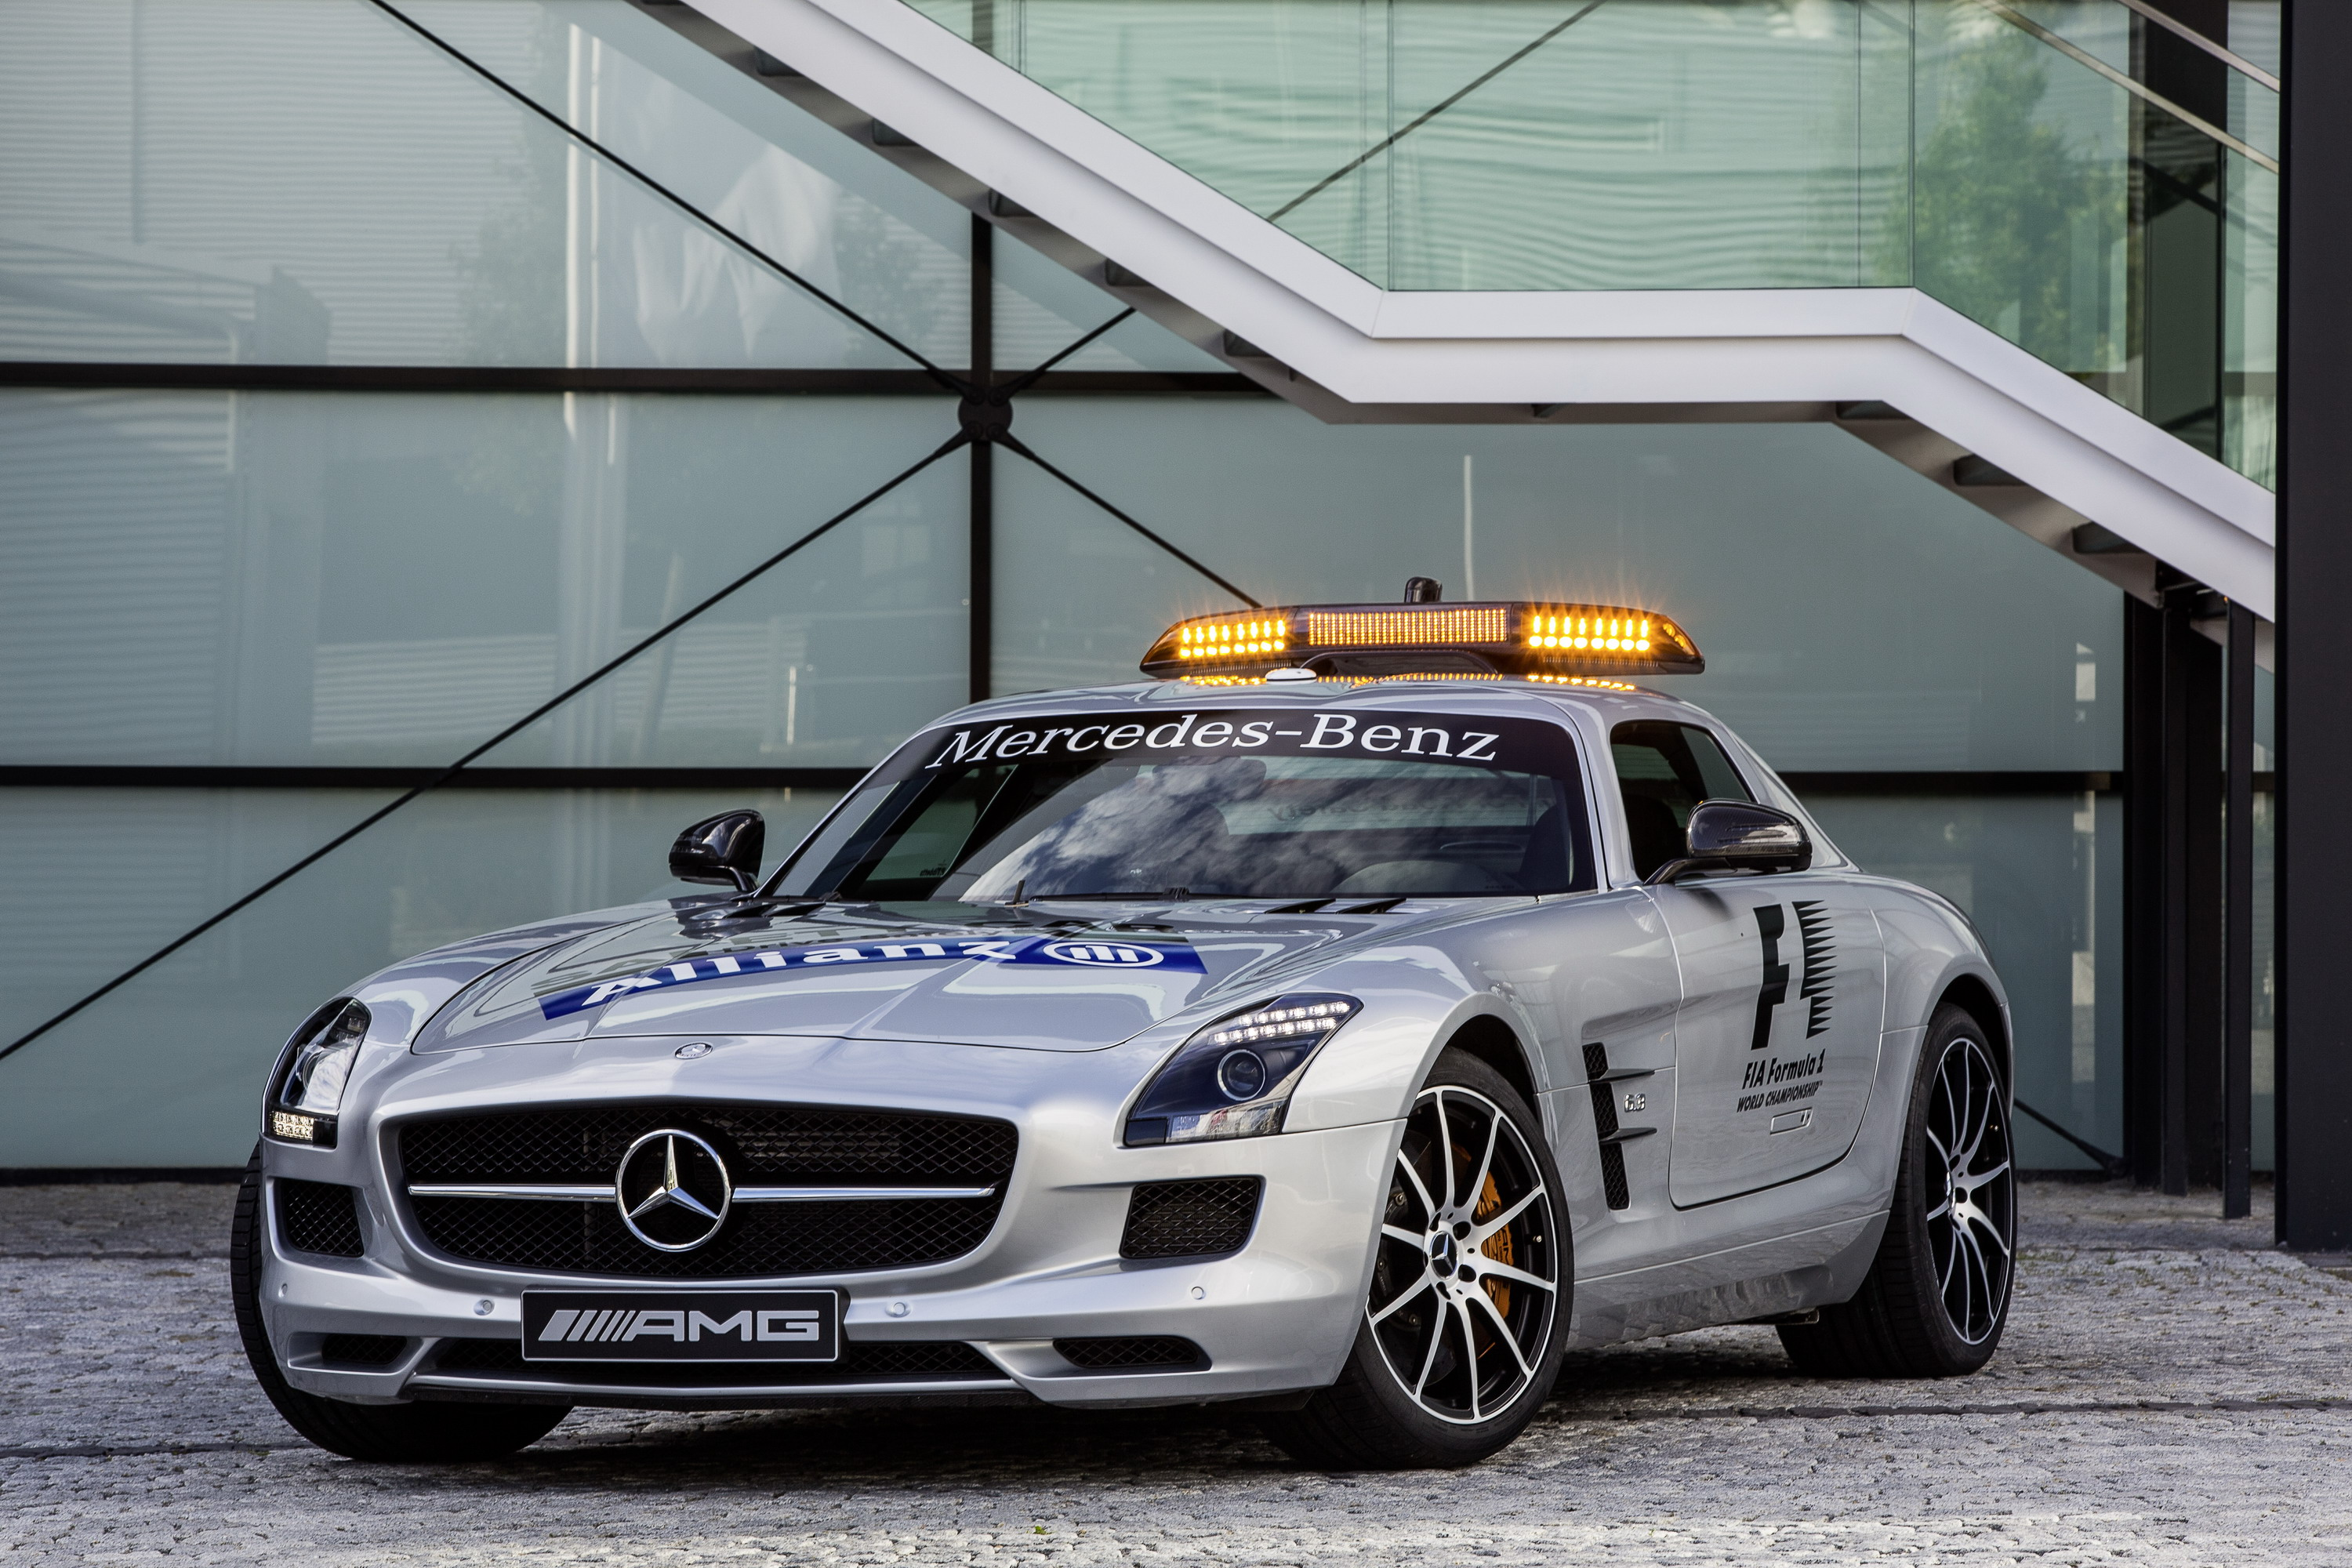 2013 mercedes benz sls amg gt f1 safety car top speed. Black Bedroom Furniture Sets. Home Design Ideas